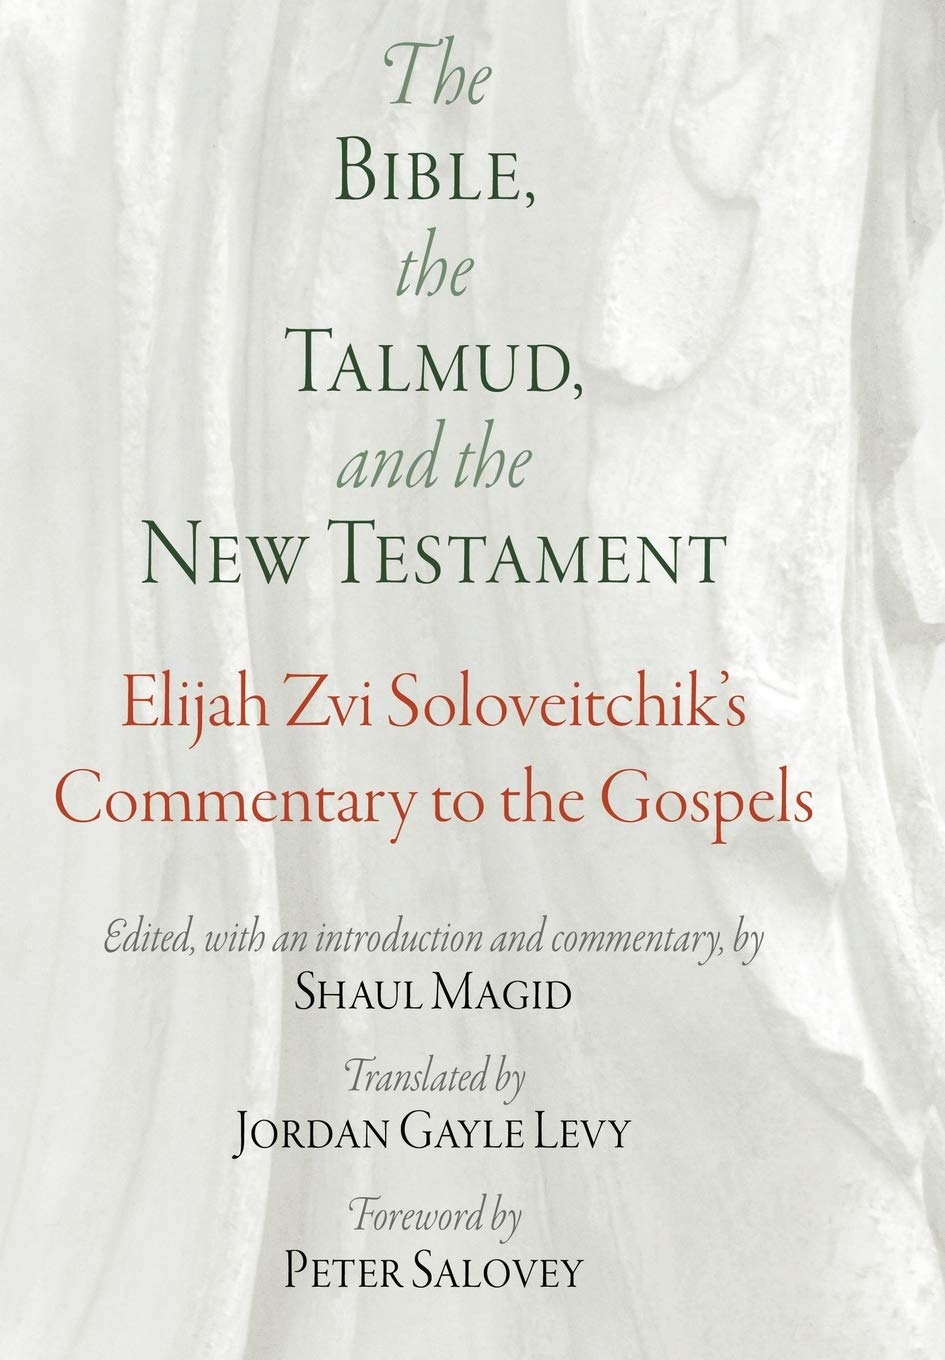 The Bible, the Talmud, and the New Testament: Elijah Zvi Soloveitchik's Commentary to the Gospels (Jewish Culture and Contexts) by University of Pennsylvania Press